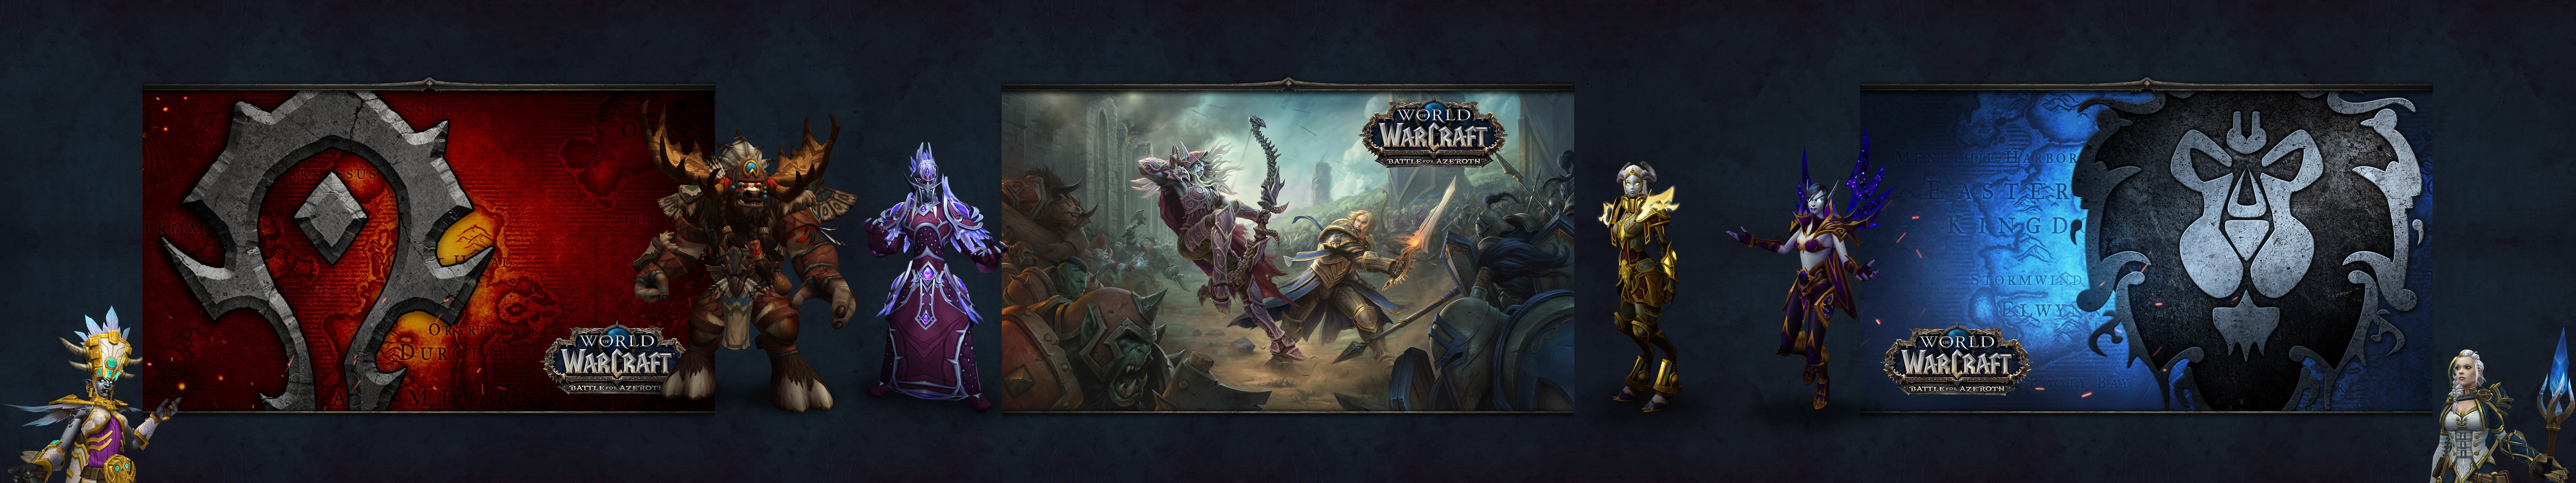 World Of Warcraft Battle For Azeroth Hd Wallpapers 38